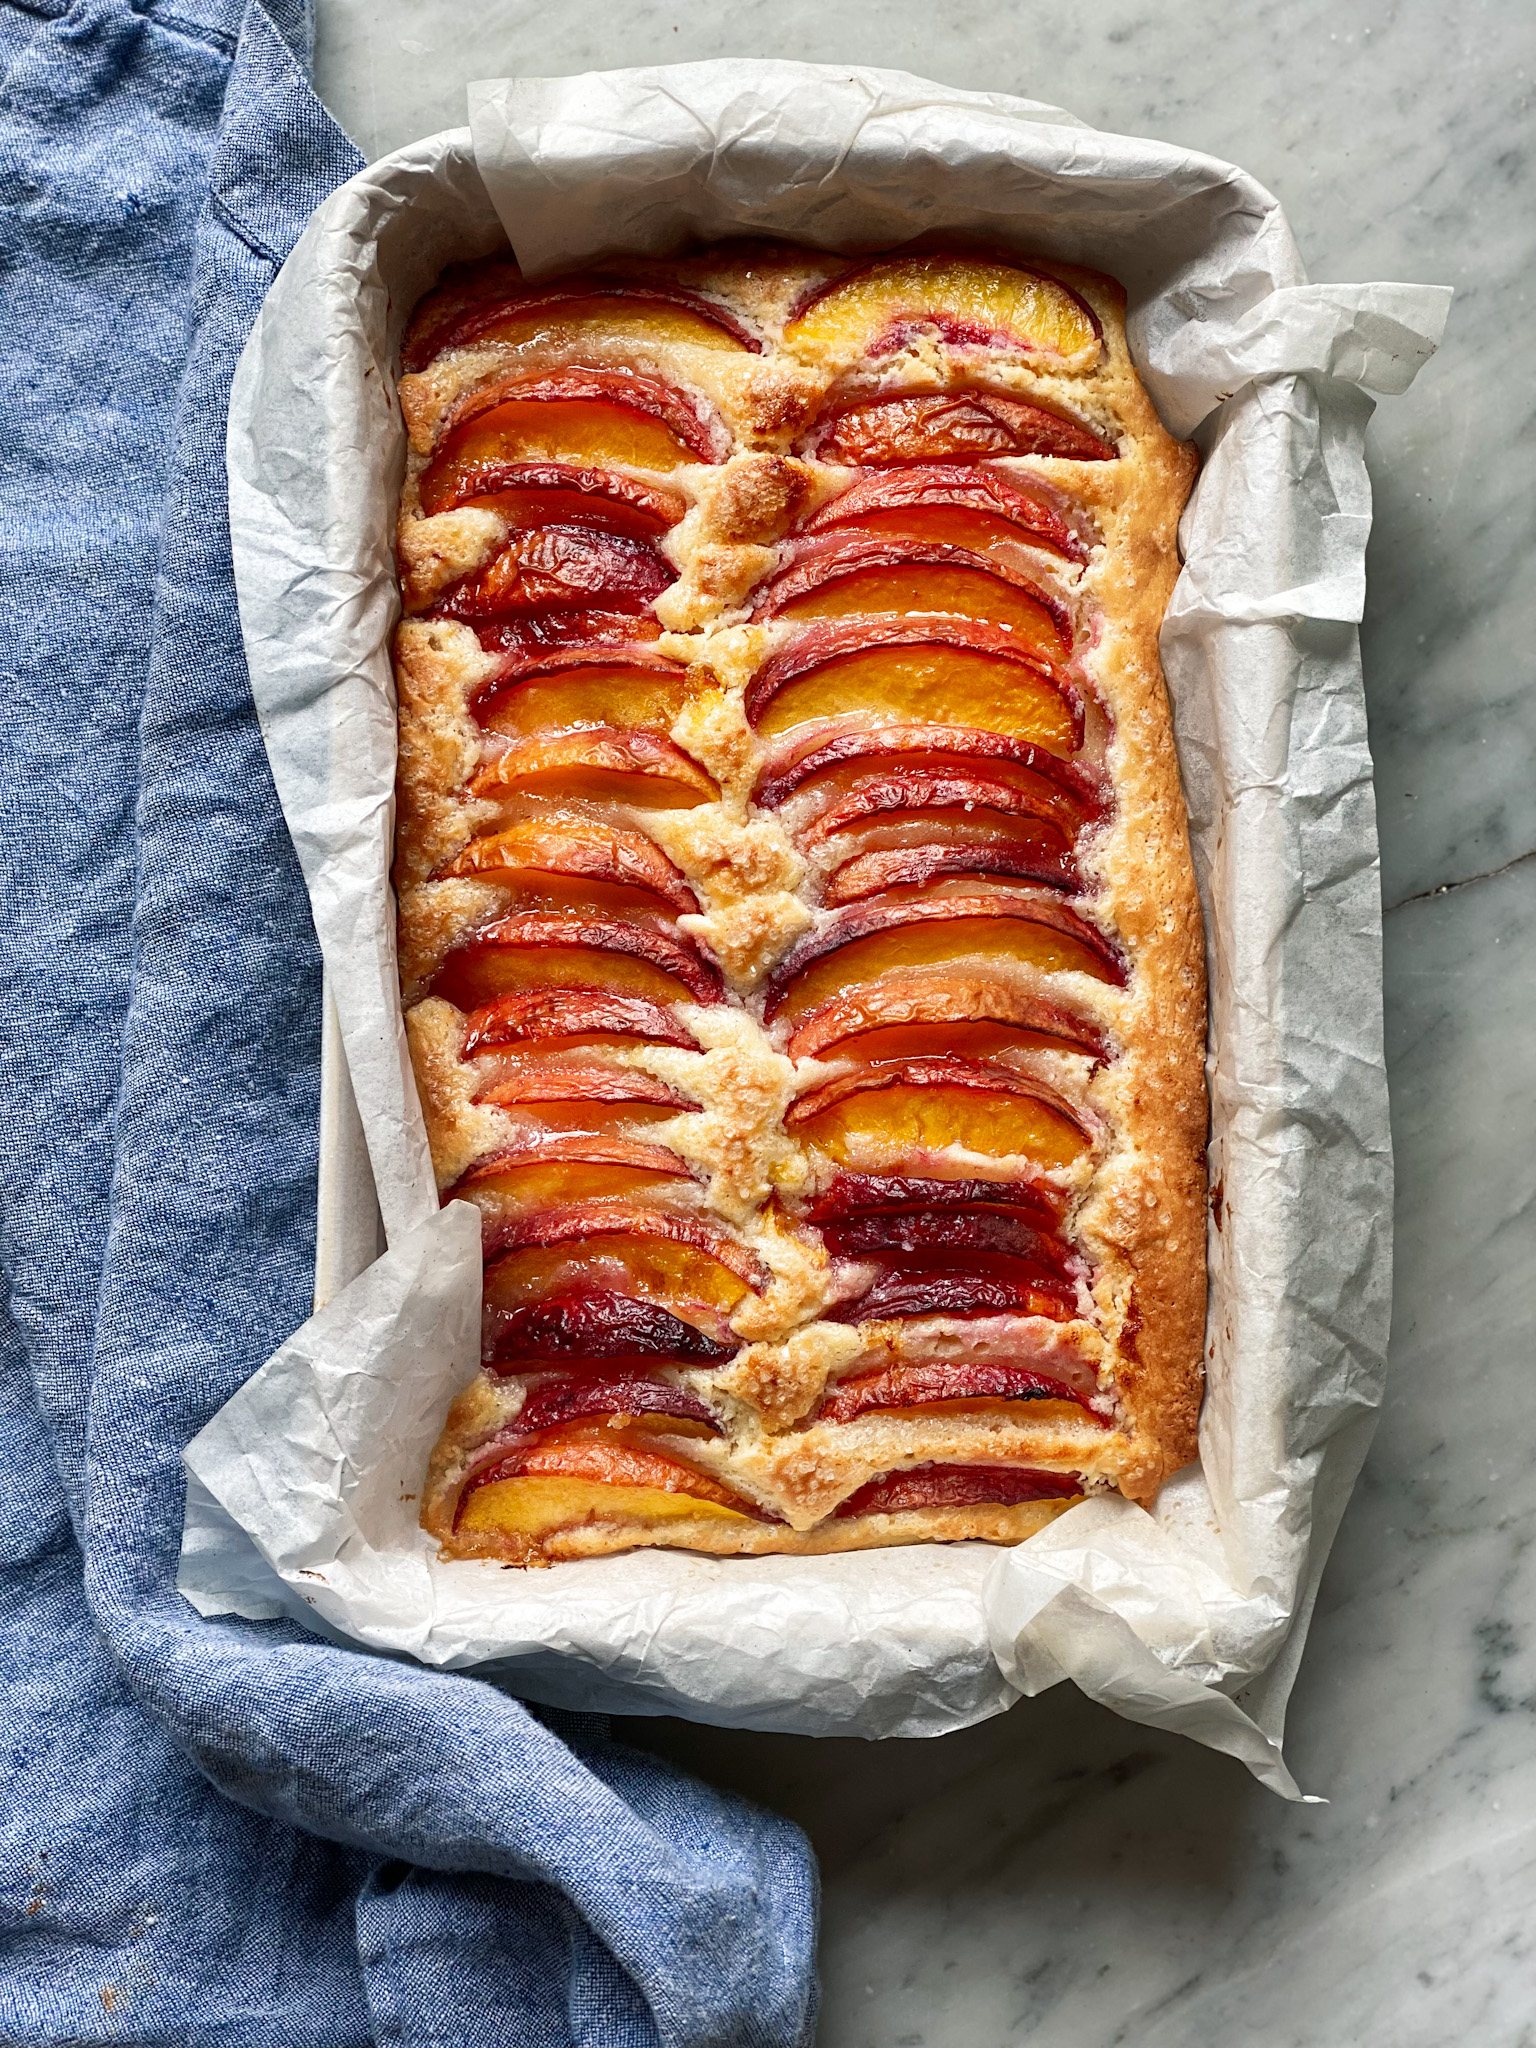 Peach topped cake in parchment with a blue napkin